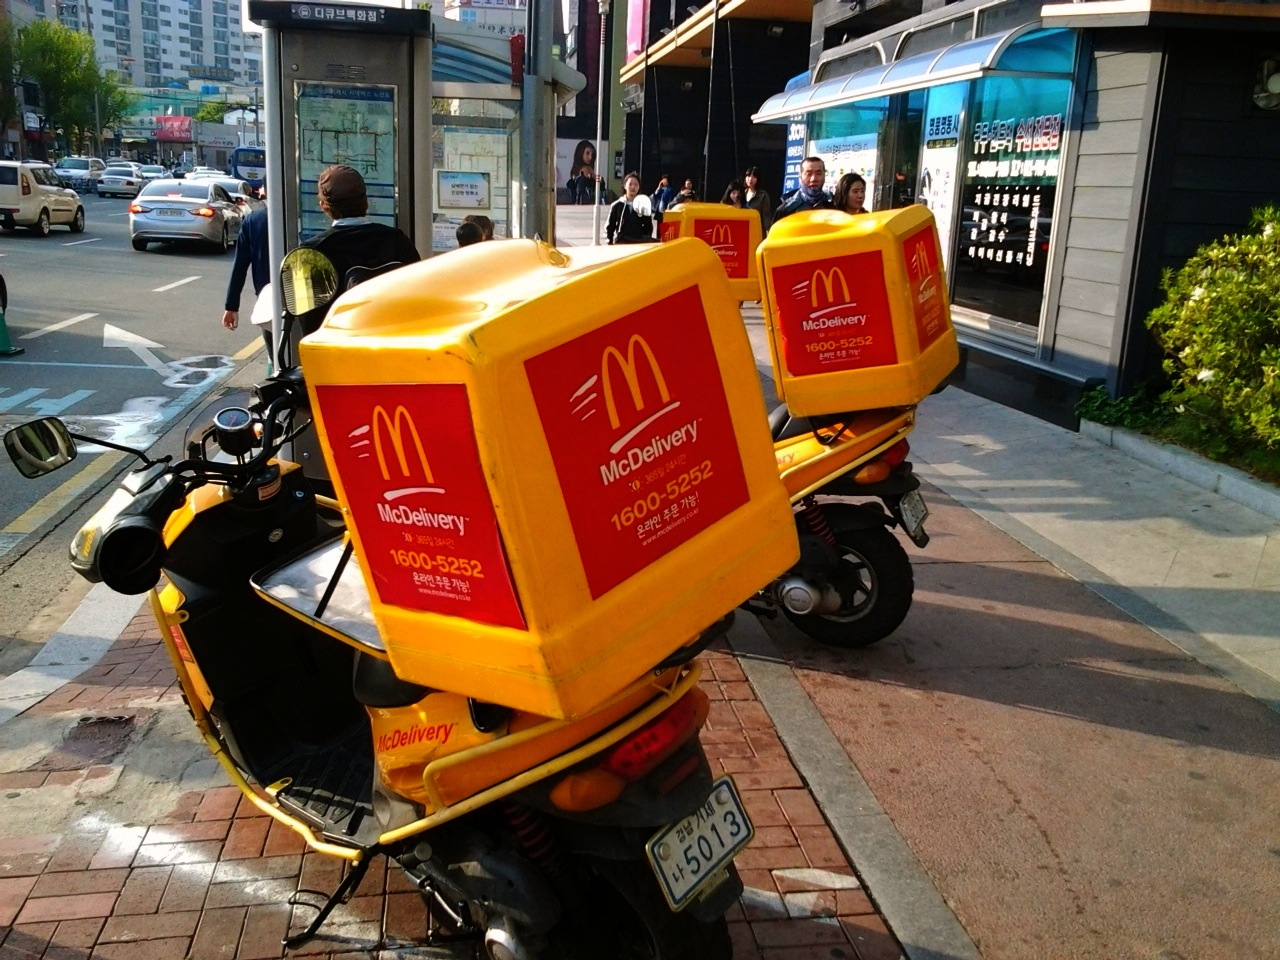 mcdonalds delivery]